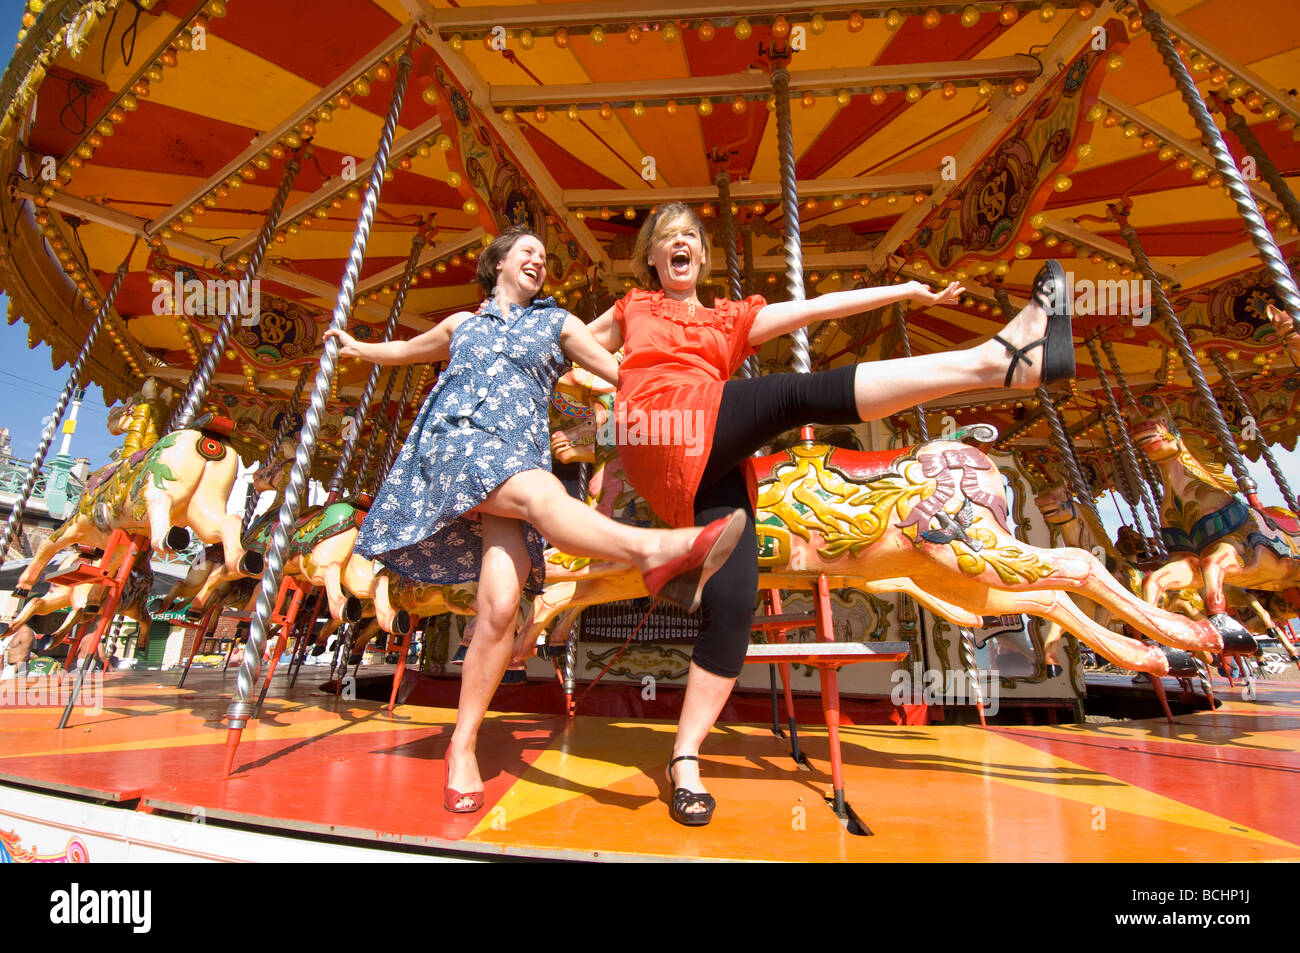 Two girls on a day out in Brighton larking about on the carousel on the beach. - Stock Image